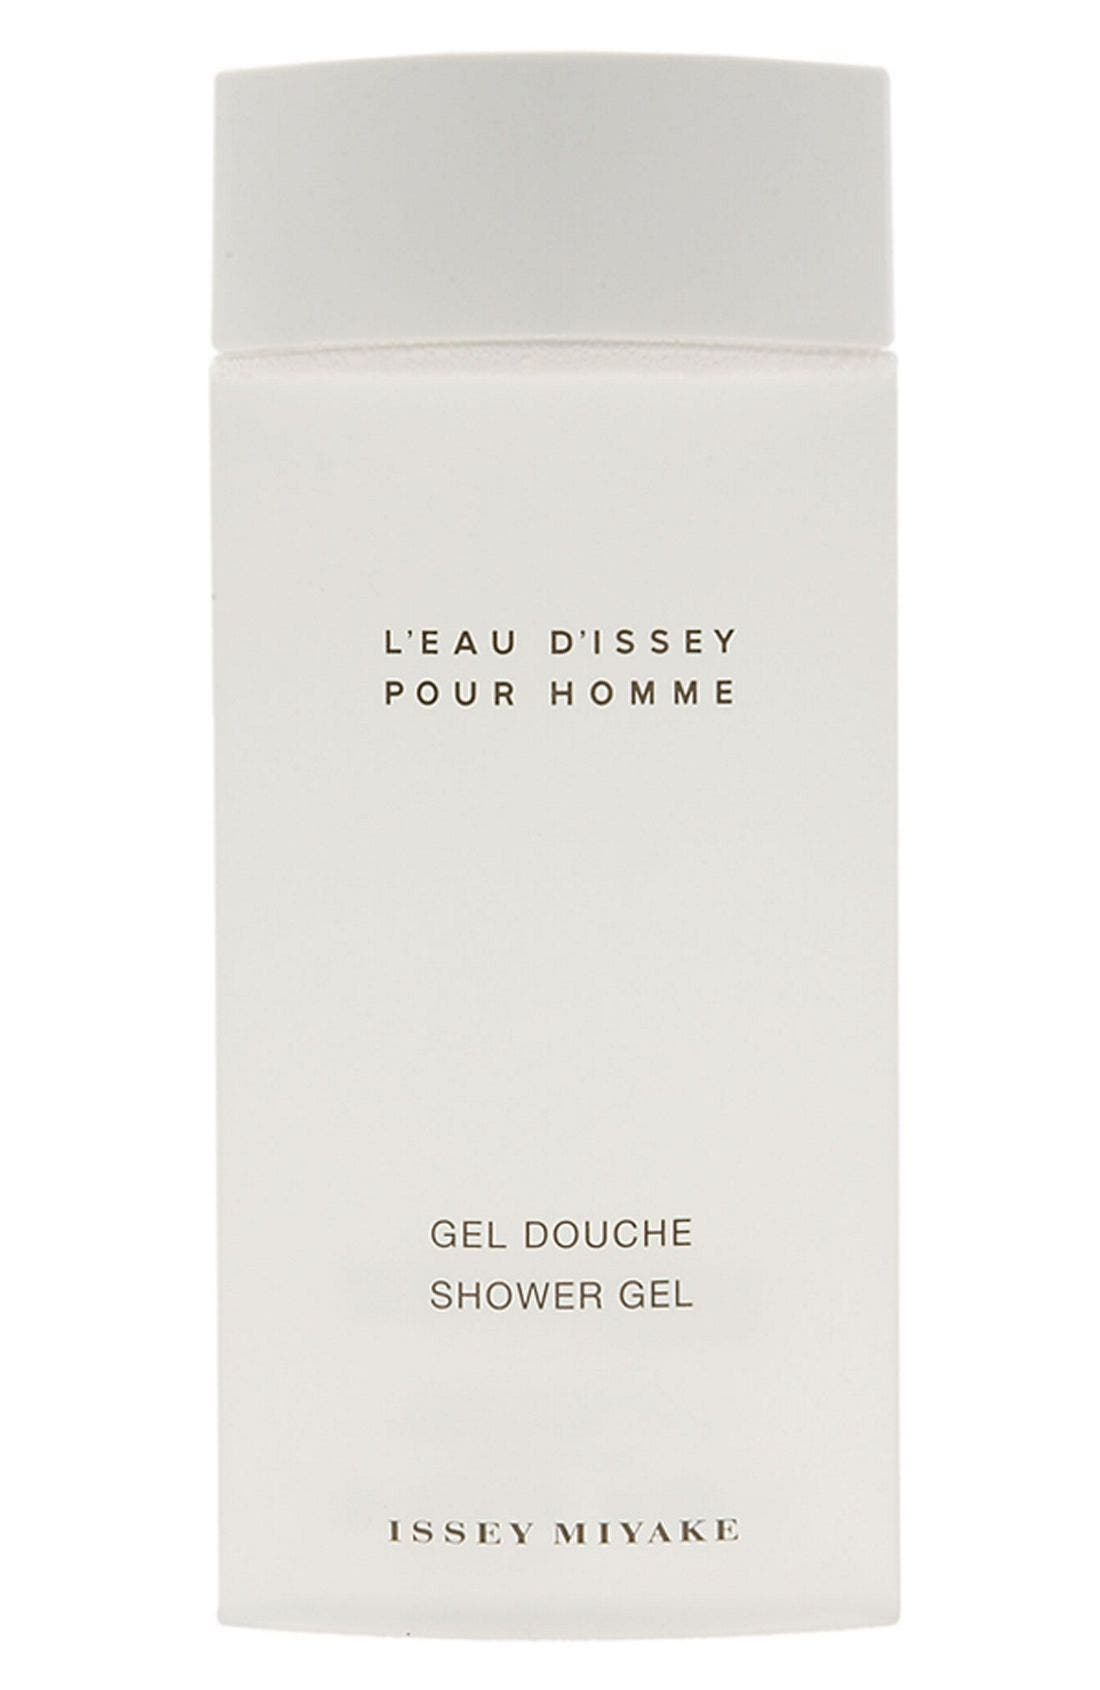 'L'Eau d'Issey pour Homme' Shower Gel,                             Main thumbnail 1, color,                             NO COLOR